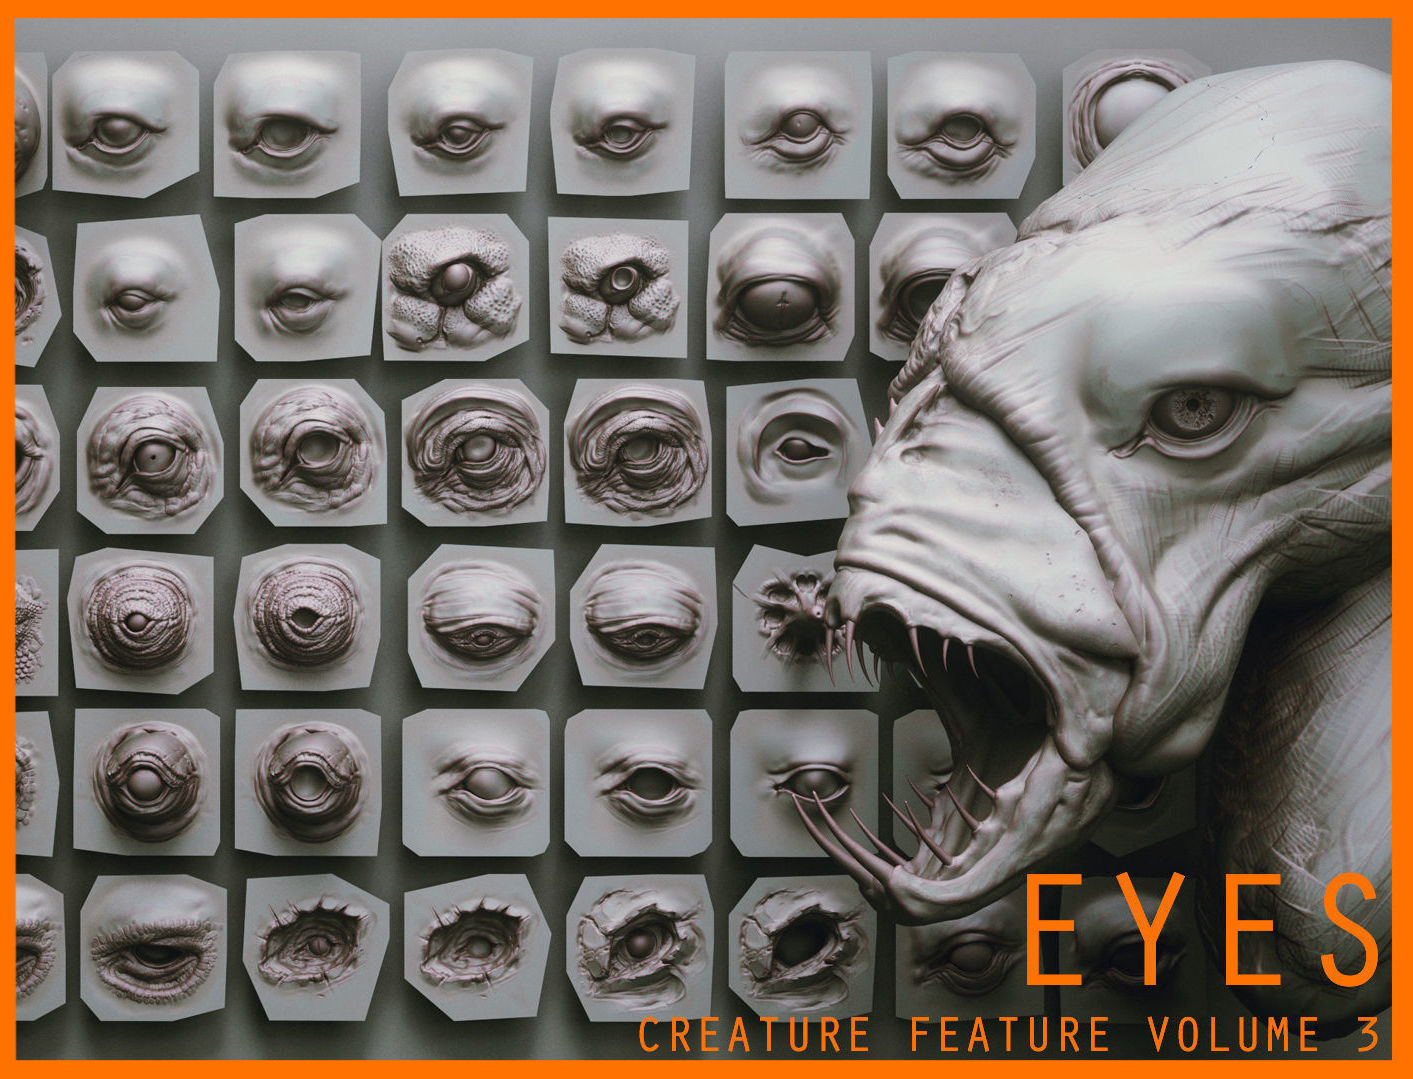 EYES - 28 Zbrush VDM creature eyes and 15 eyeballs